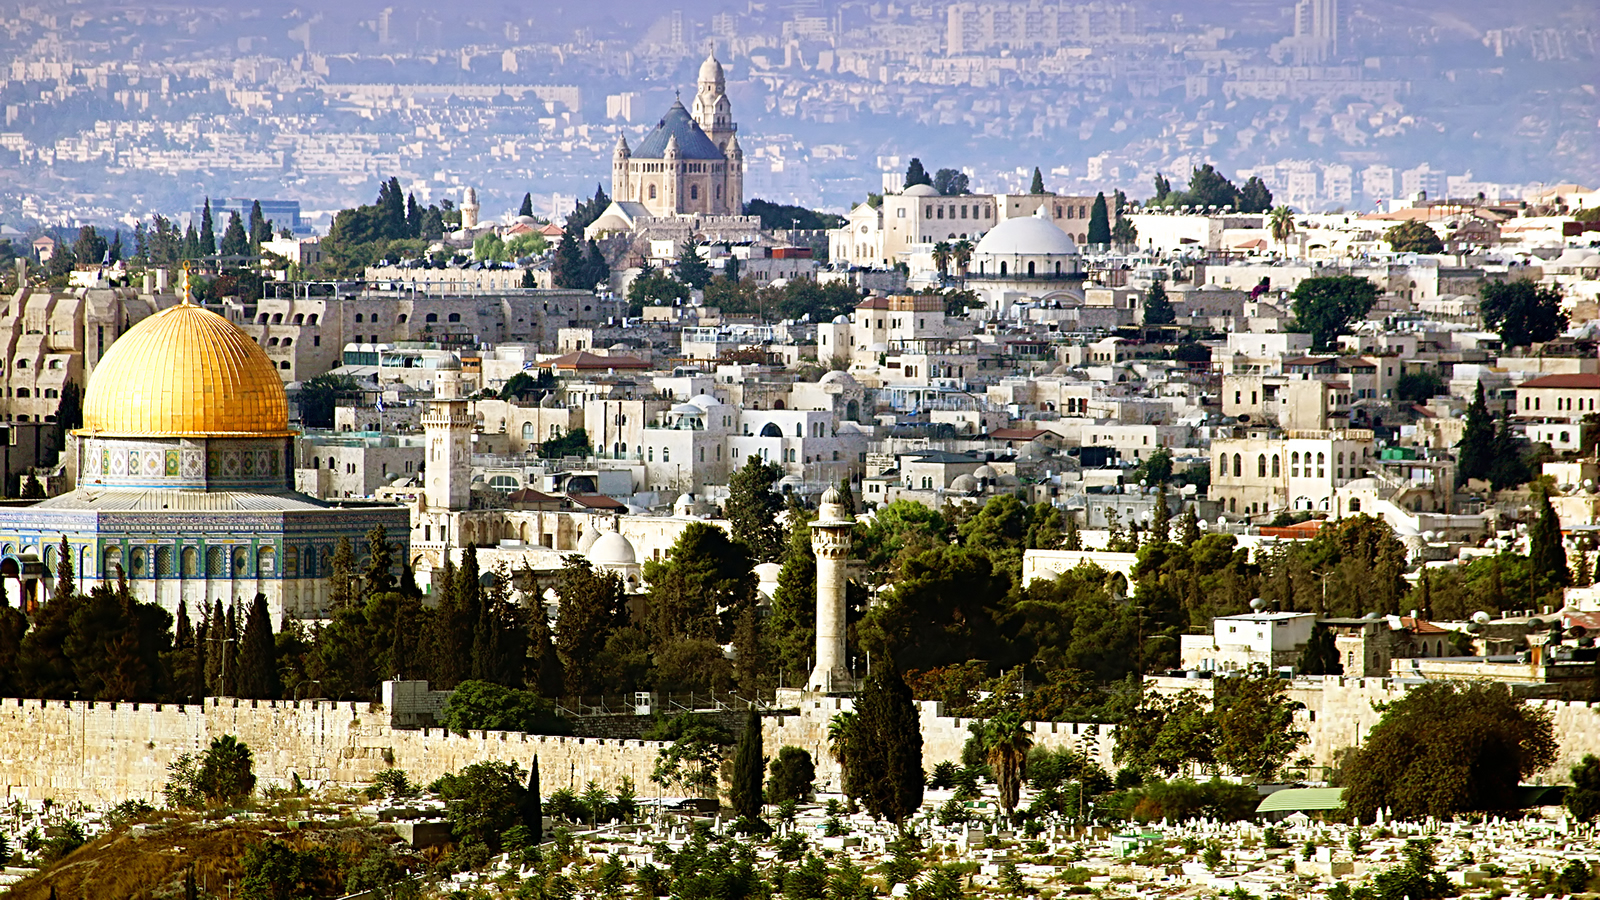 Jerusalem Skyline with Al-Aqsa Mosque